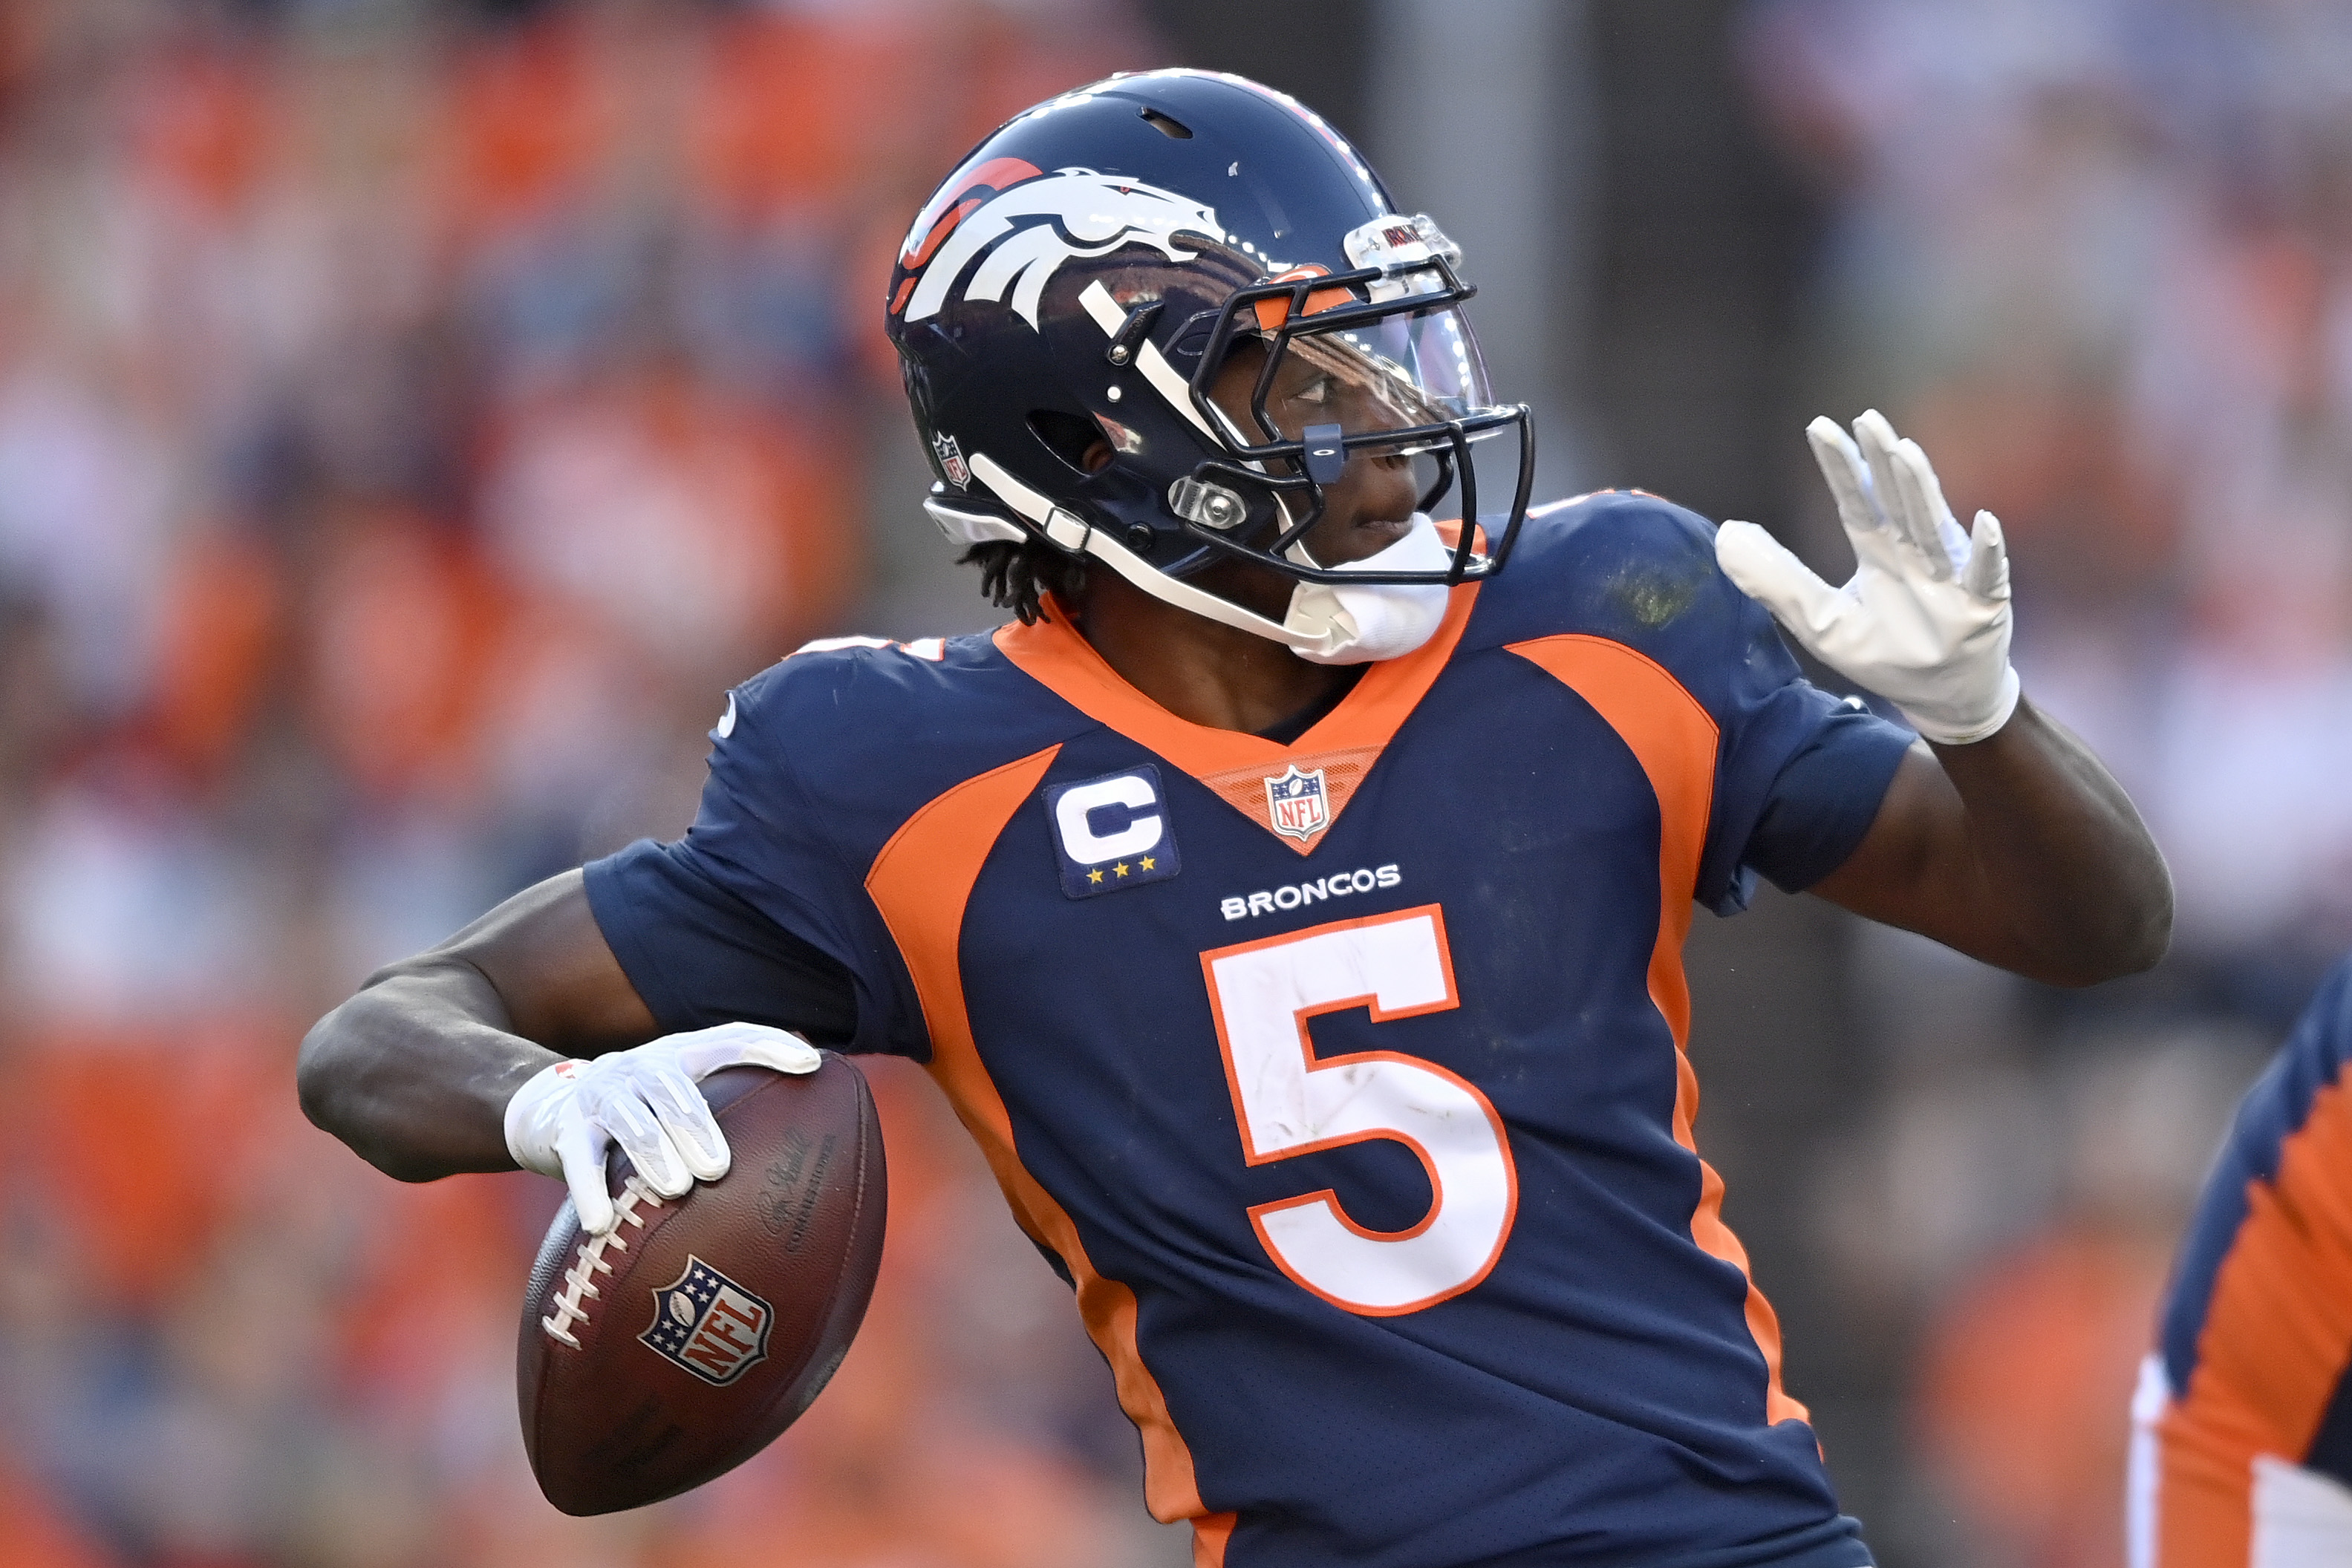 Teddy Bridgewater #5 of the Denver Broncos looks to throw the ball against the Las Vegas Raiders during the third quarter at Empower Field At Mile High on October 17, 2021 in Denver, Colorado.